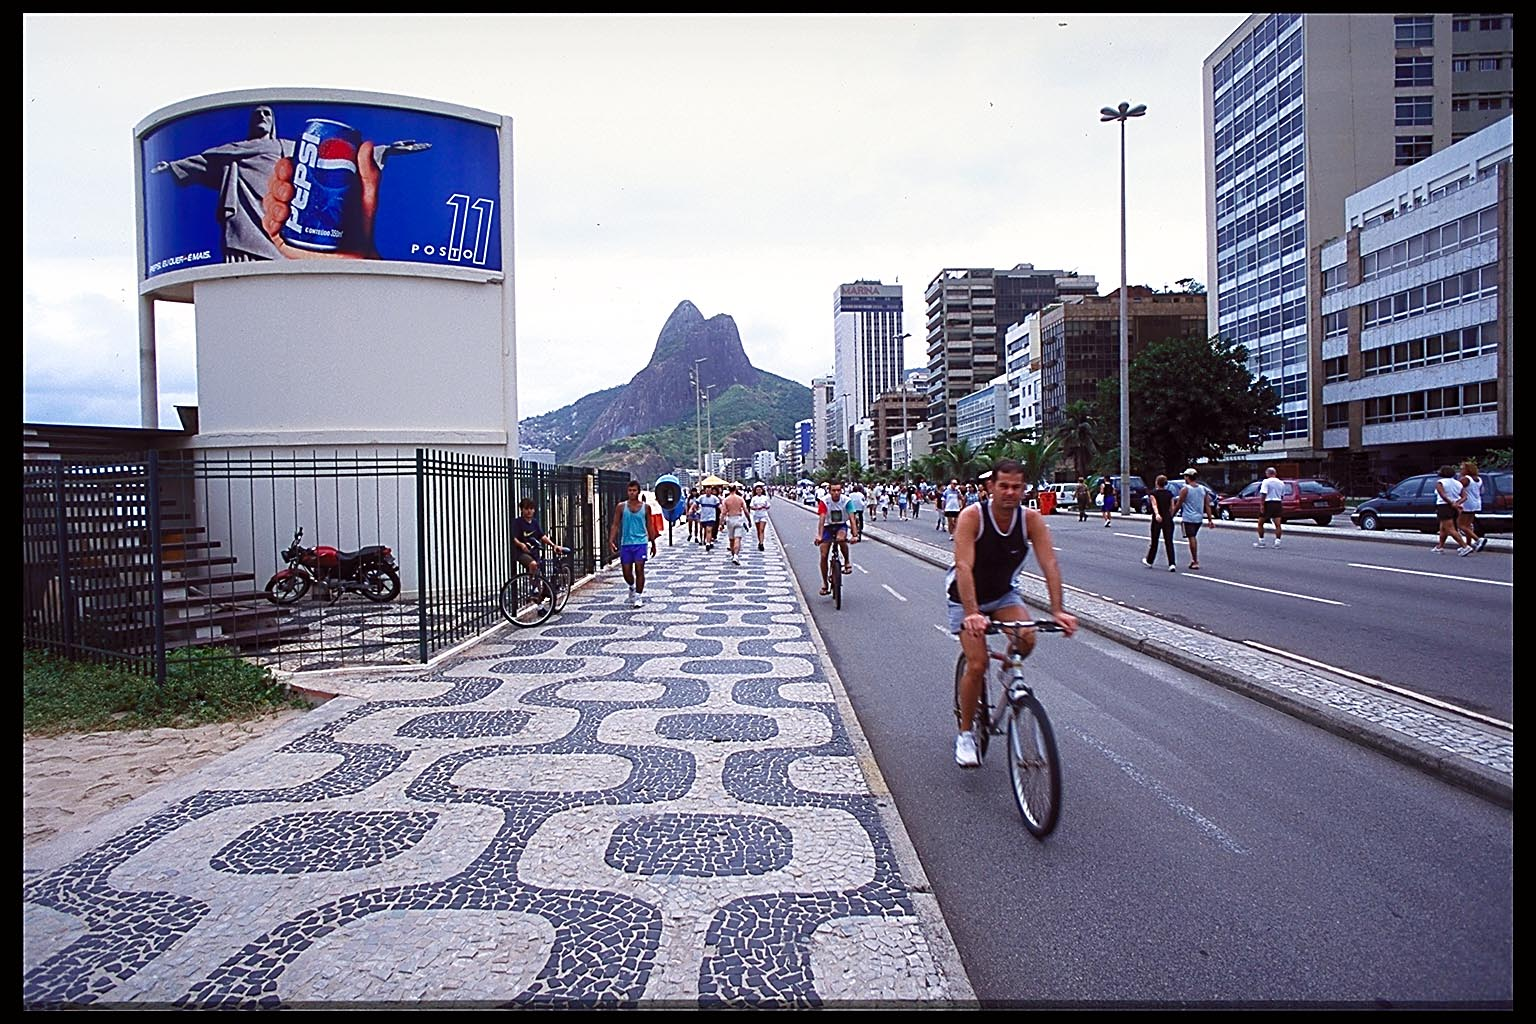 http://www.ianskipworth.com/photo/pcd1403/ipanema_rio_13_4.jpg